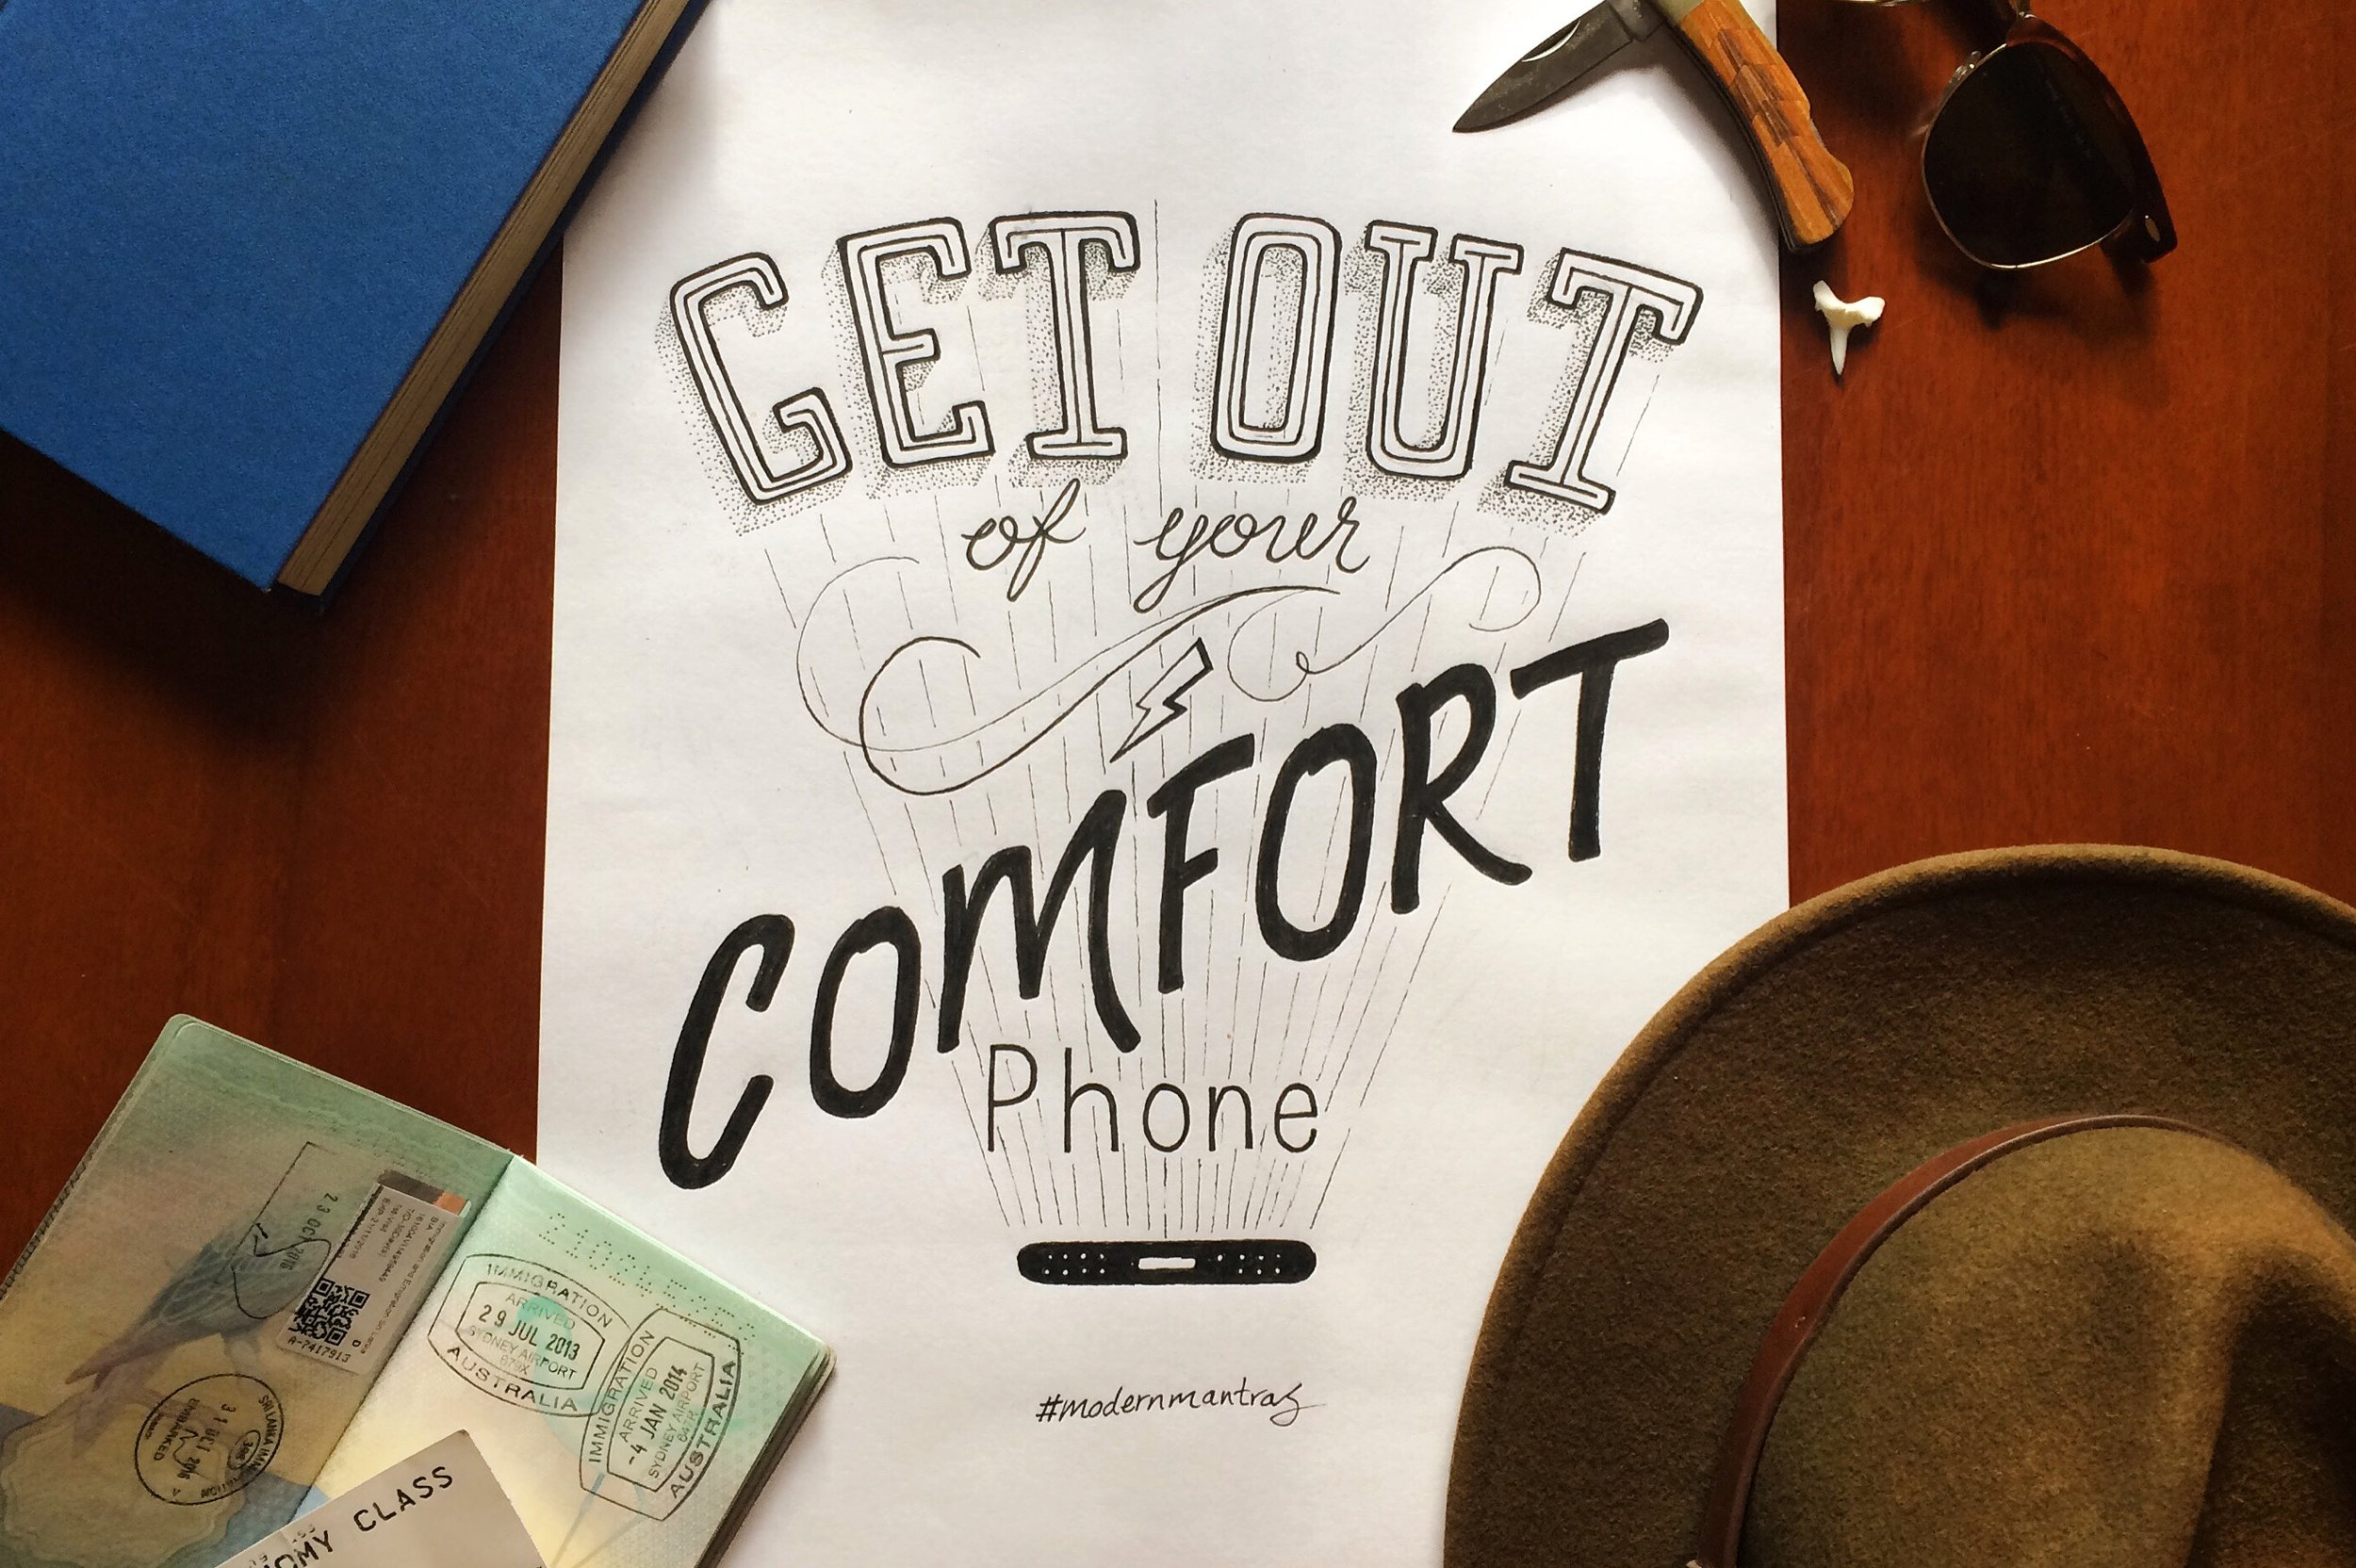 MODERN MANTRA #2 - Get out of your comfort phone.